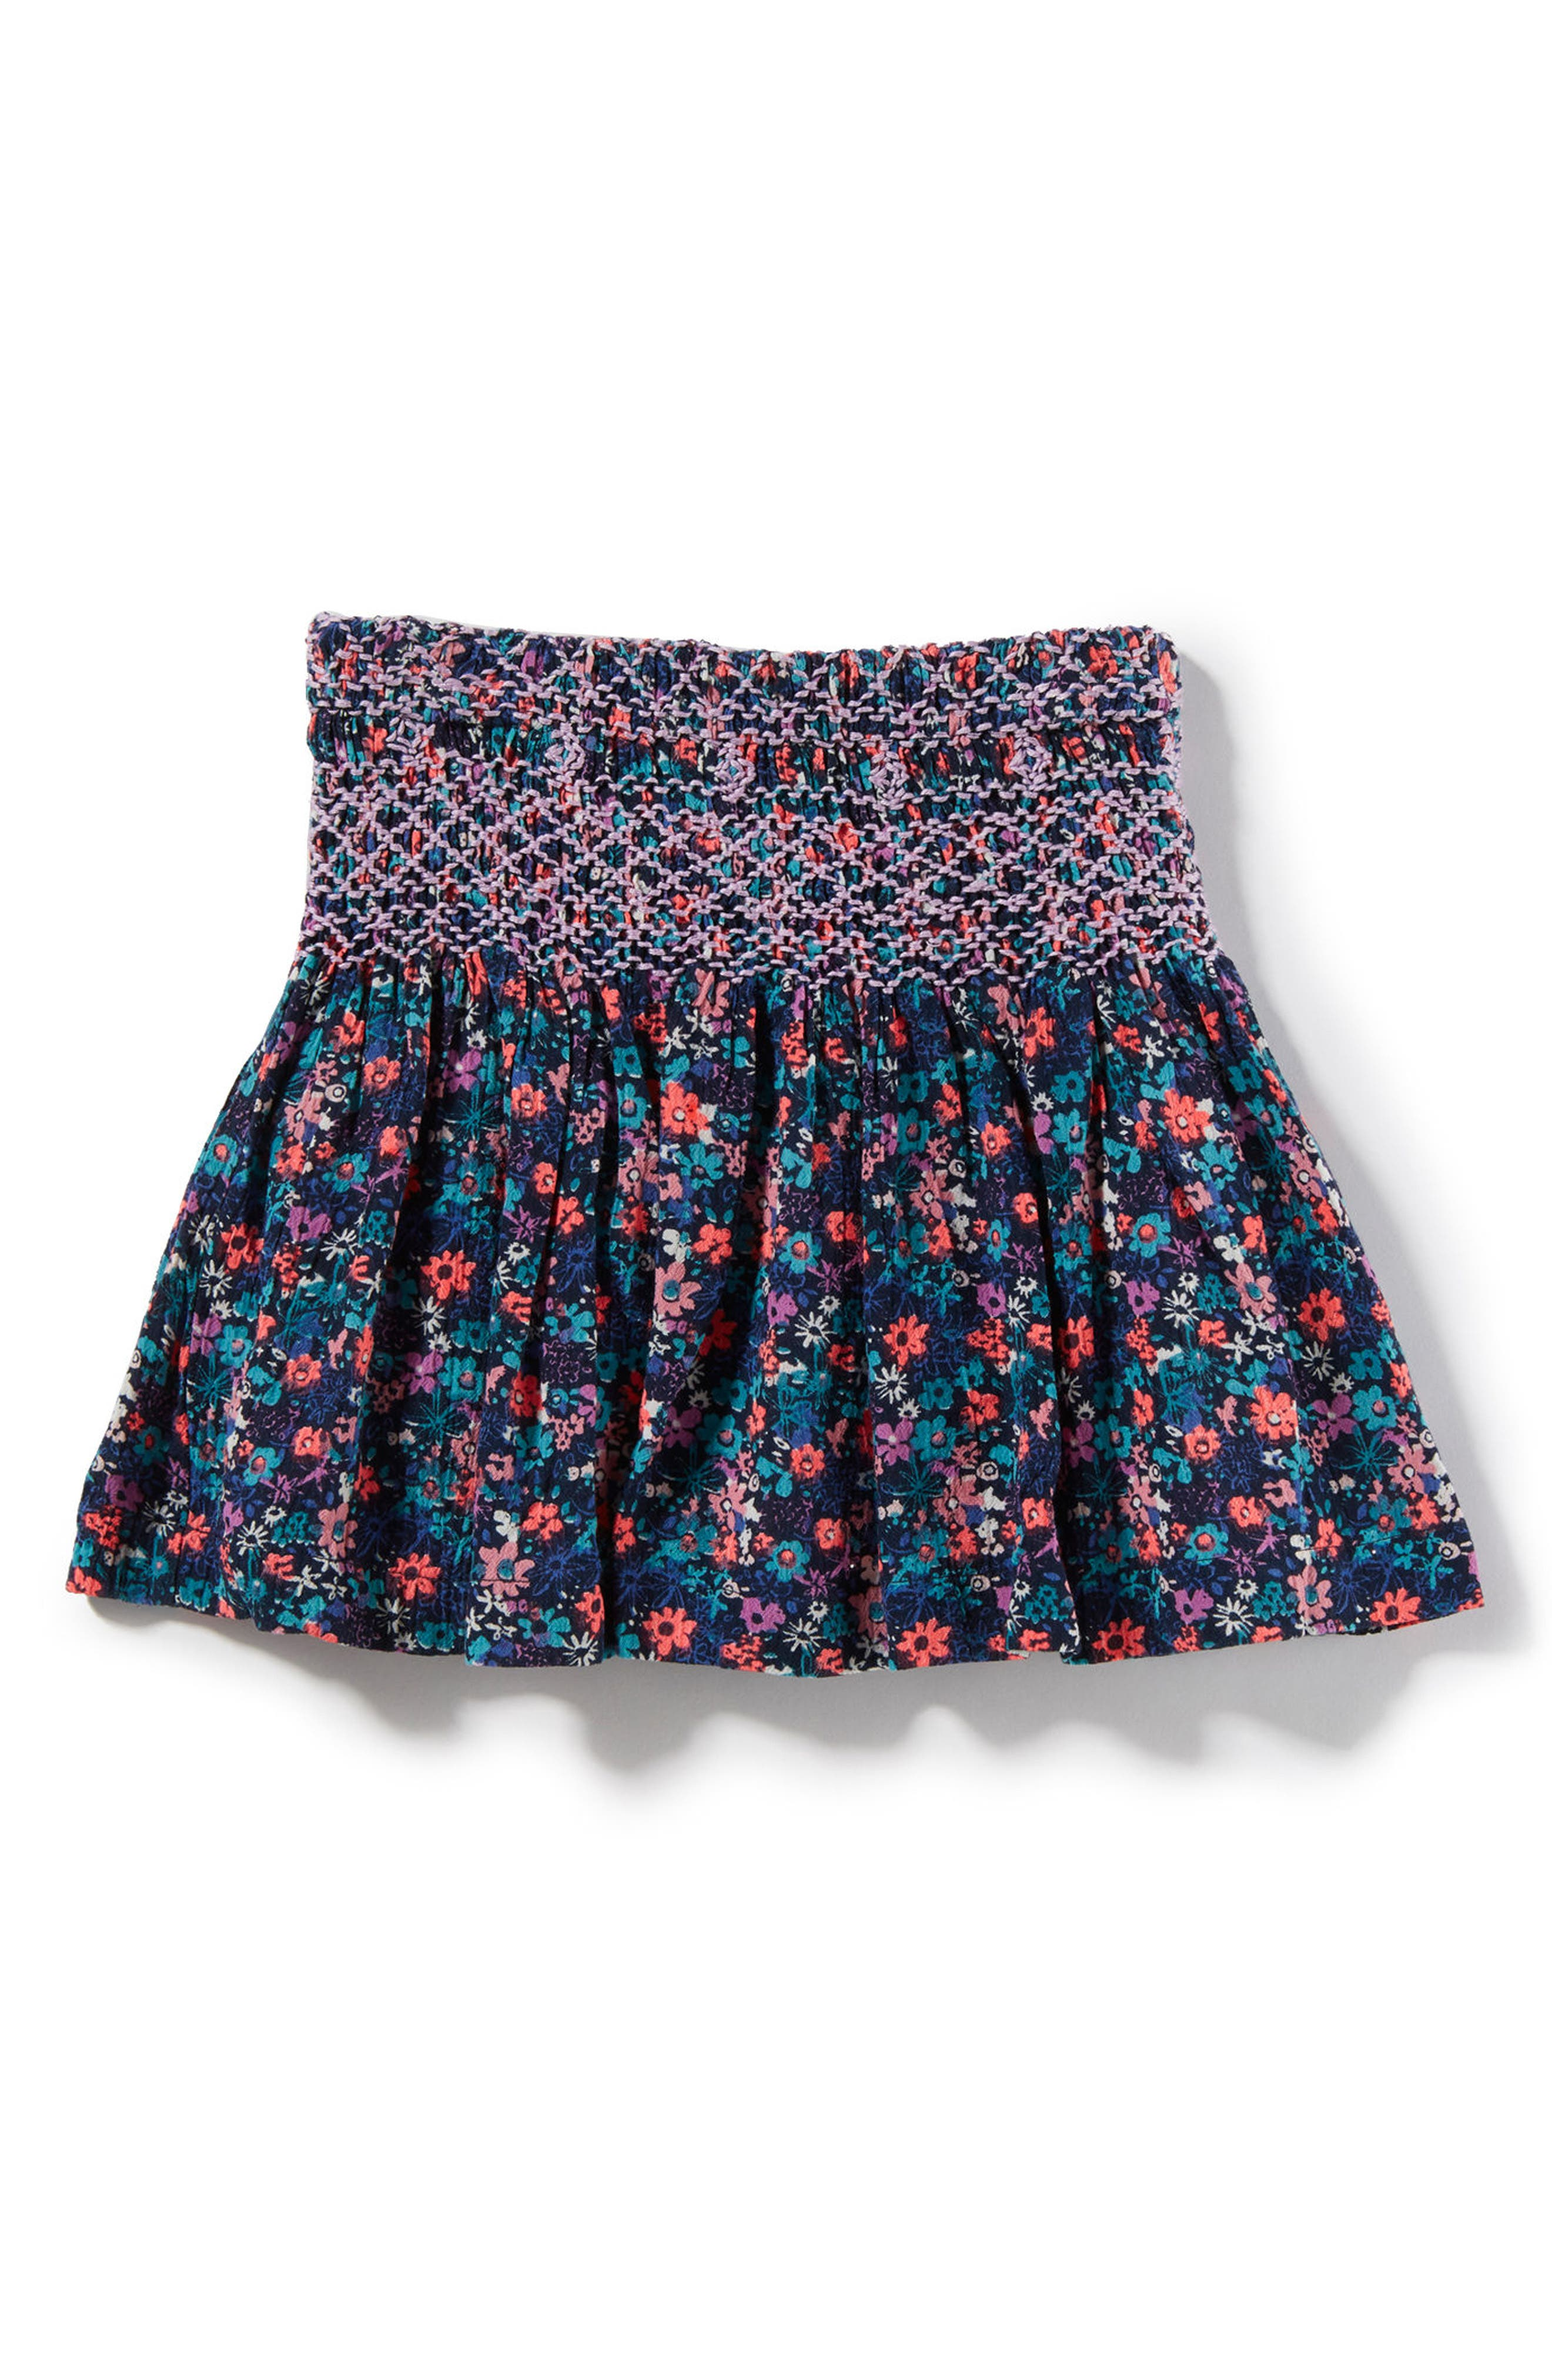 Pixie Smock Skirt,                         Main,                         color, Navy